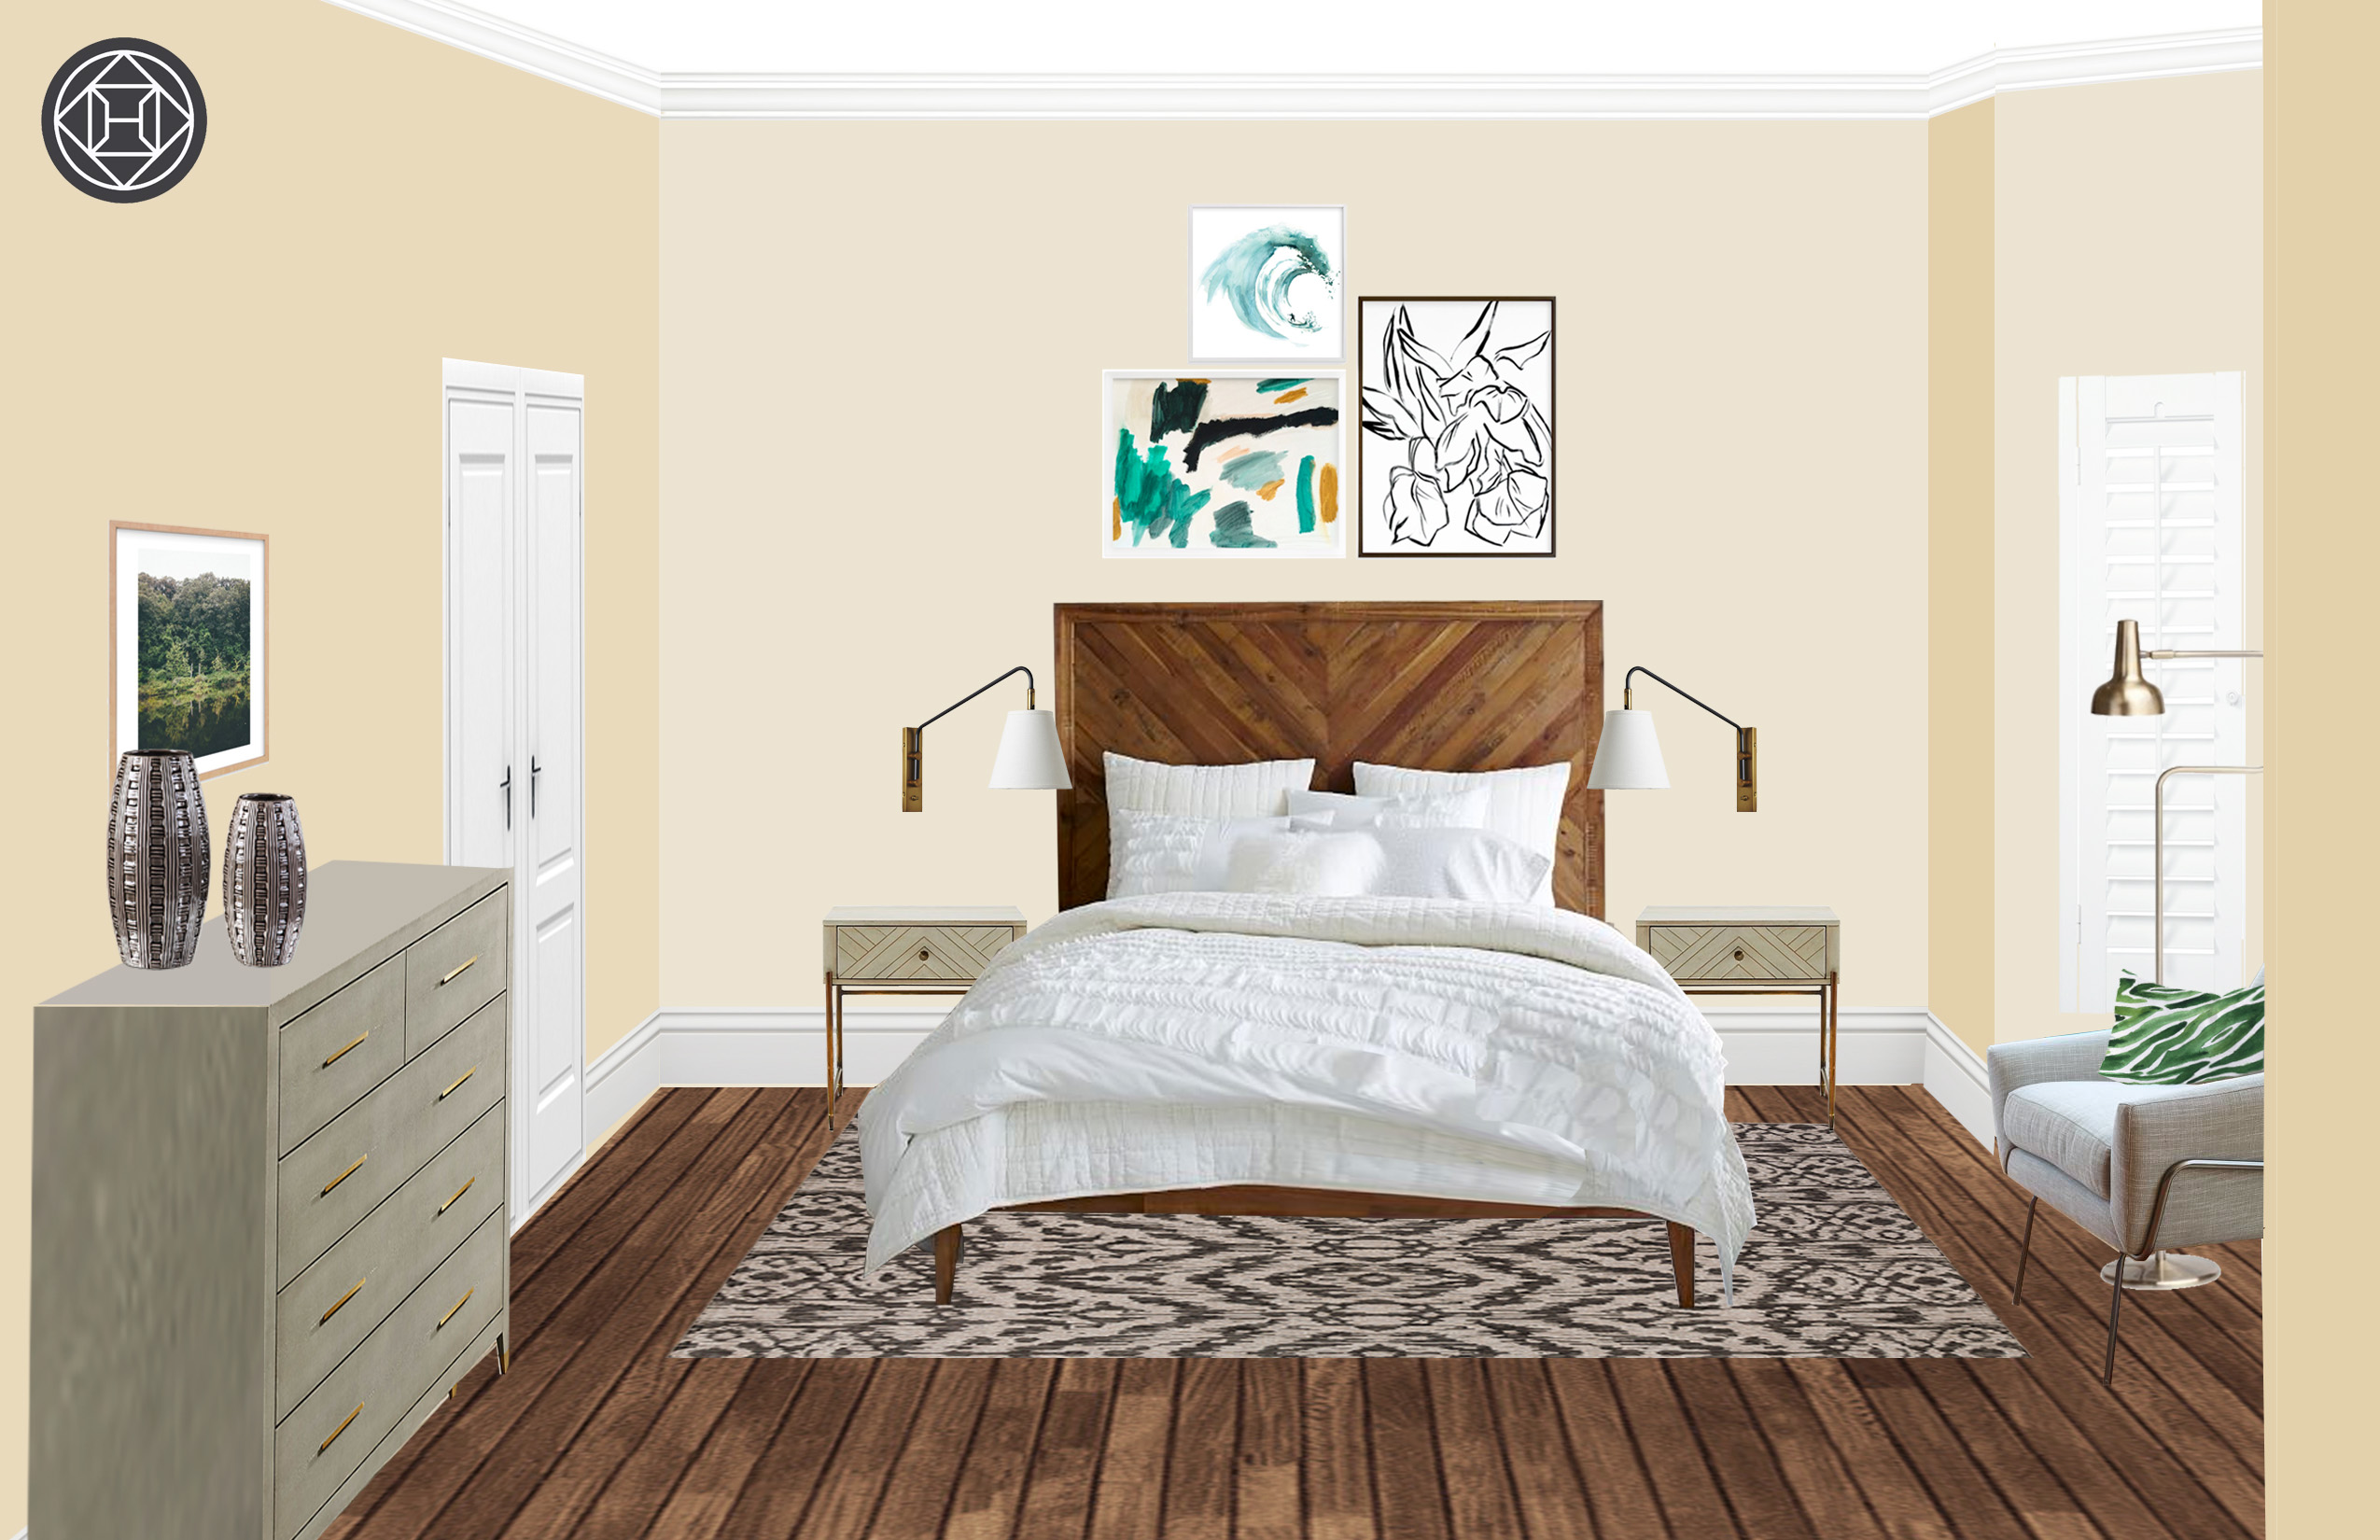 Modern Bedroom Layout Eclectic Bohemian Midcentury Modern Bedroom Design By Havenly